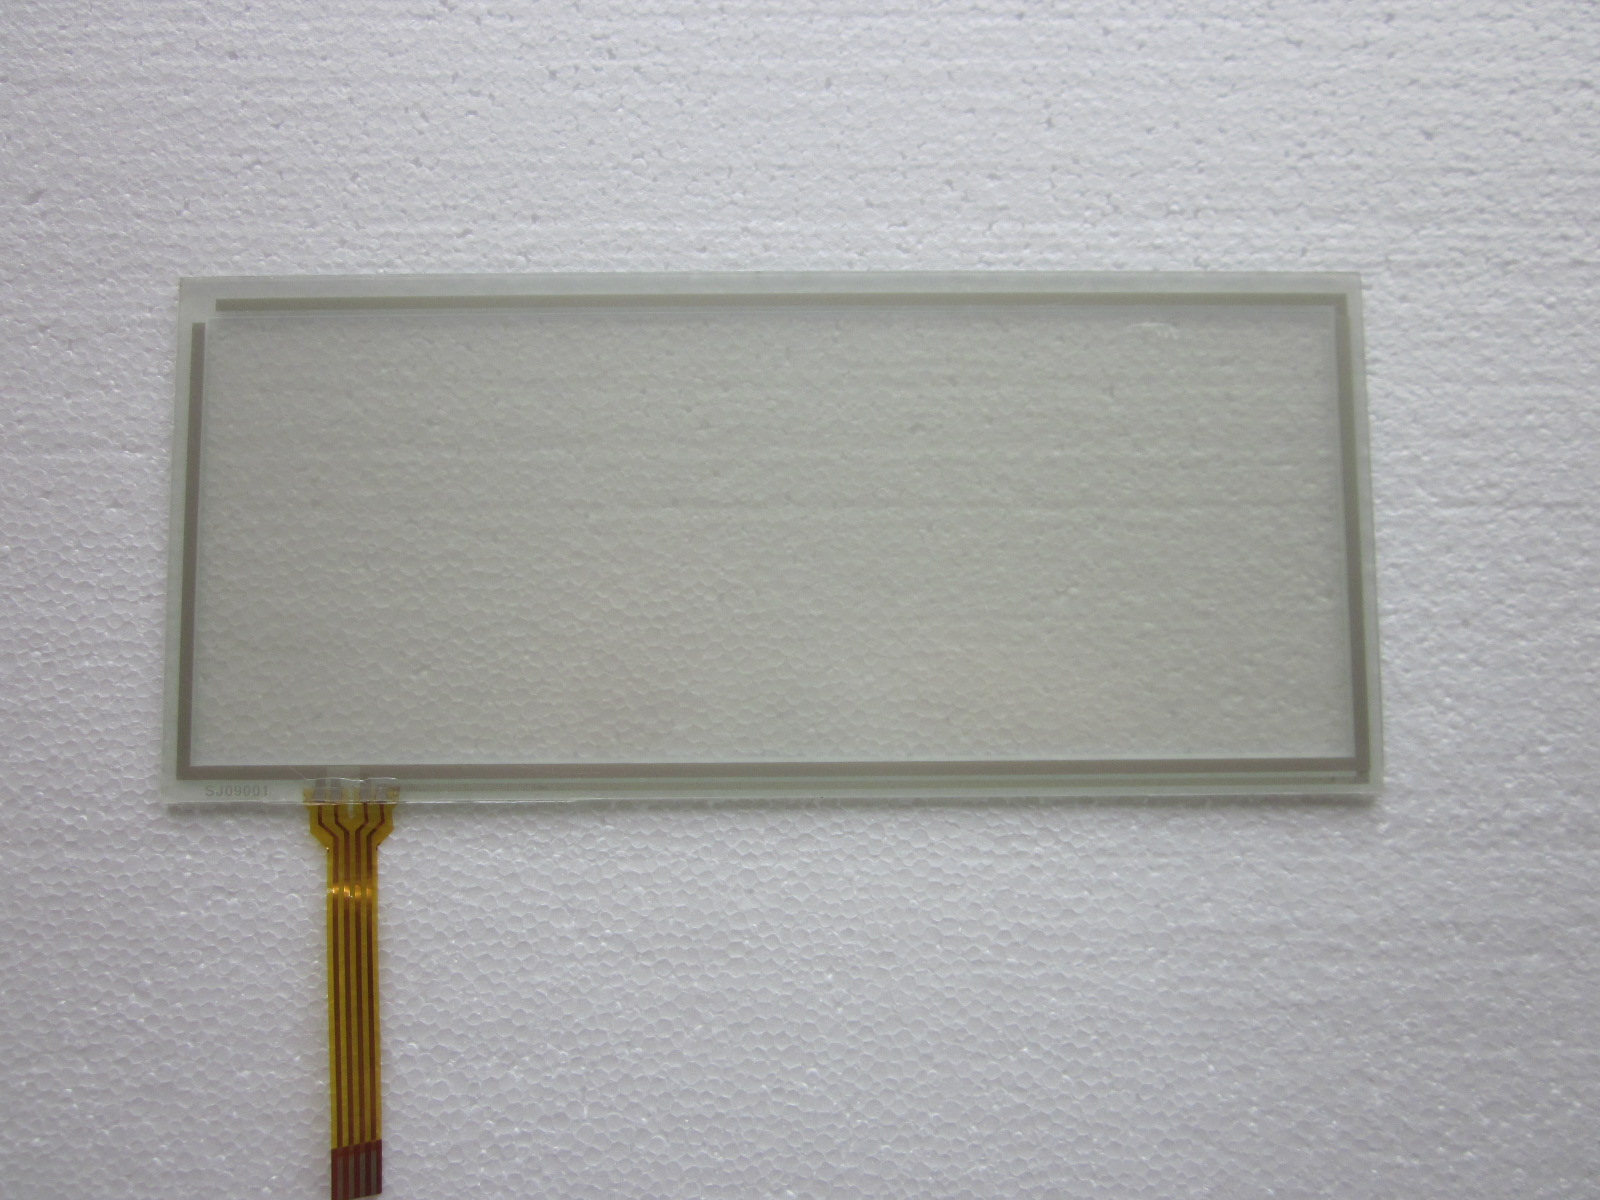 TP 3252S1 TOUCH Glass Panel for PX Coding Machine repair do it yourself New Have in